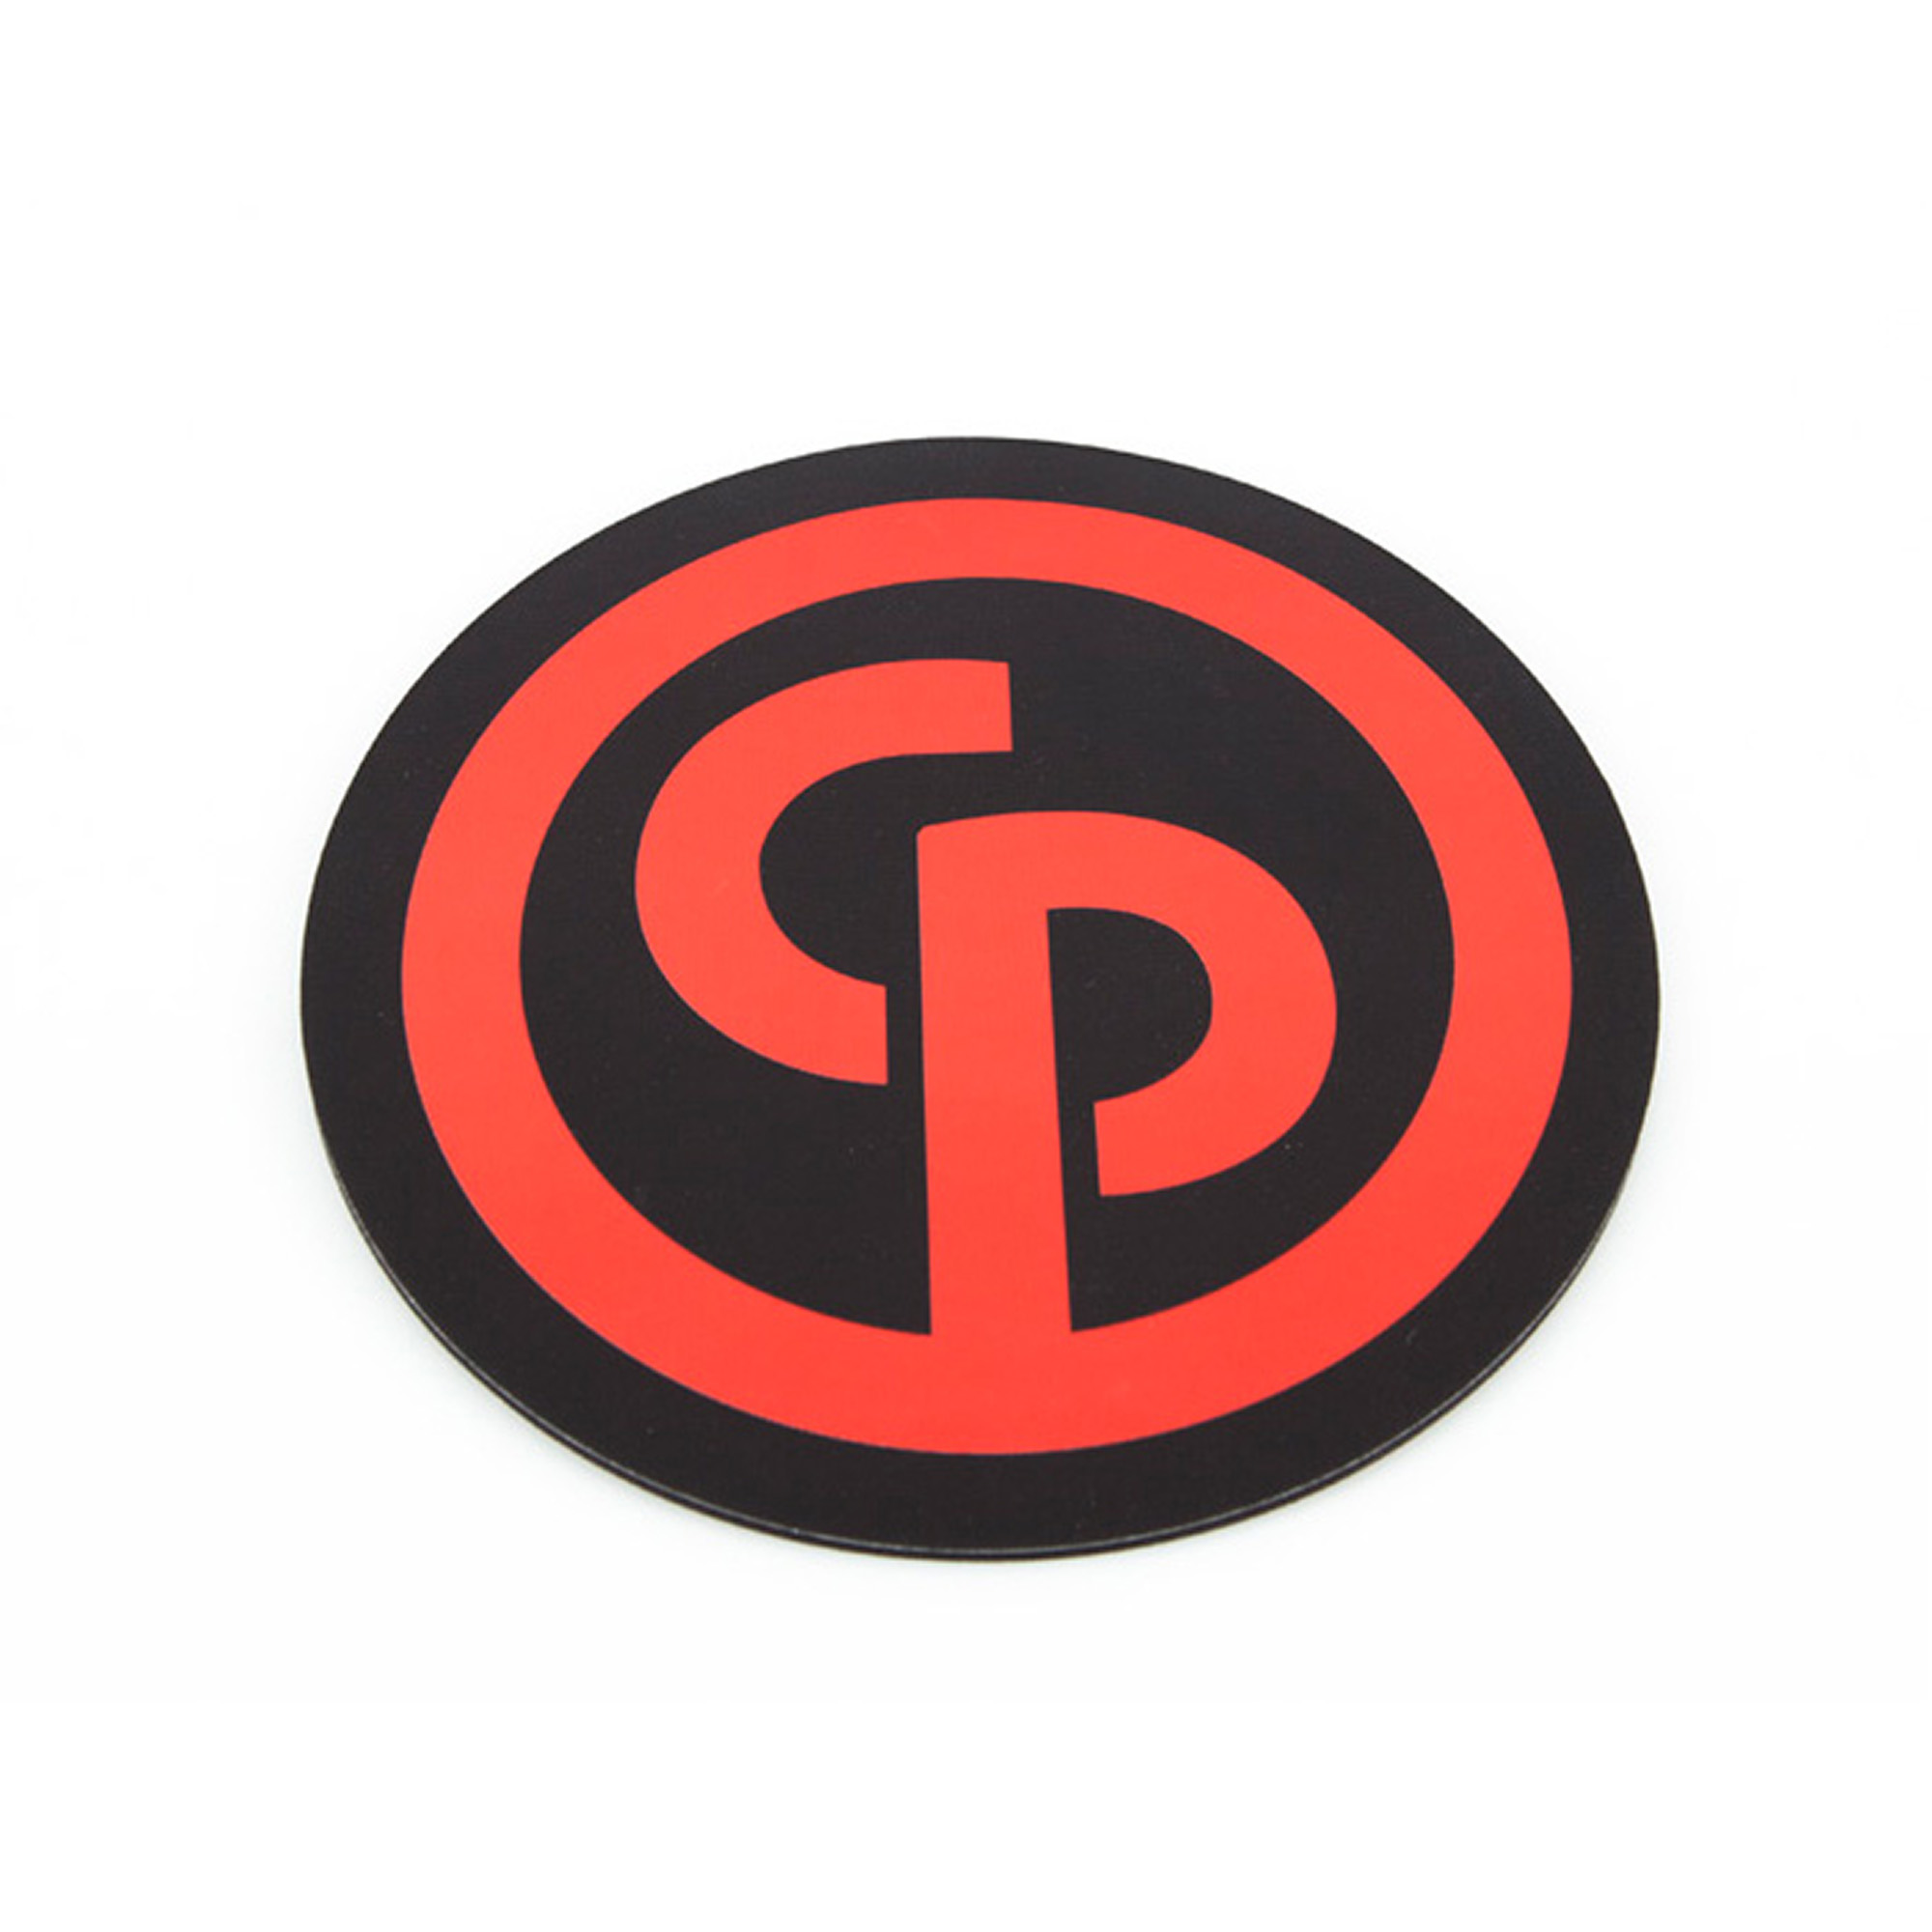 Round mouse mat in black color with CP logo printed in red. PVC top with a 3 mm rubber sponge.